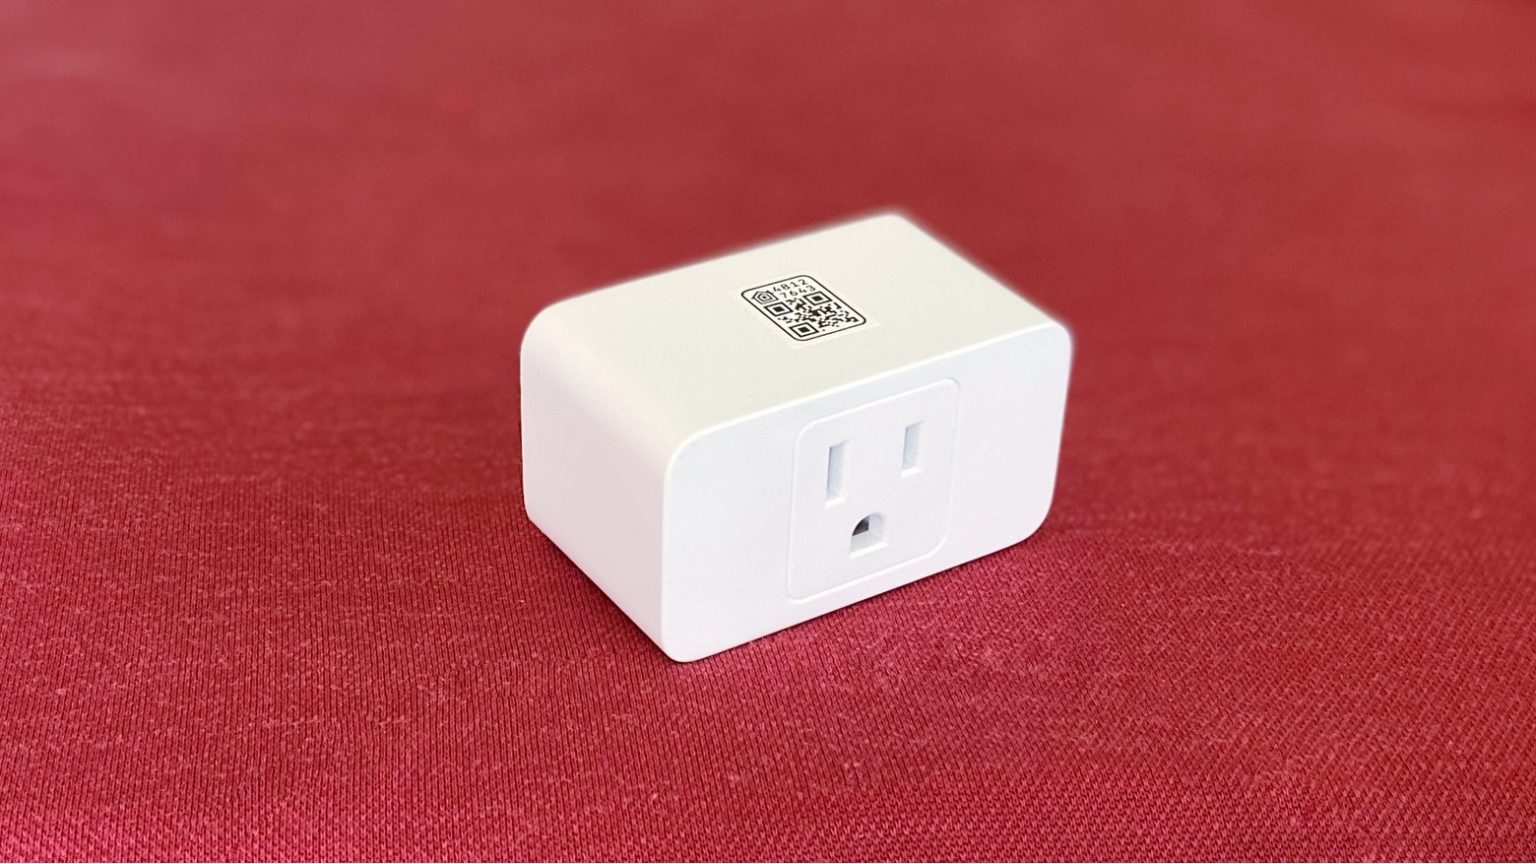 Meross Smart WiFi Plug Mini review